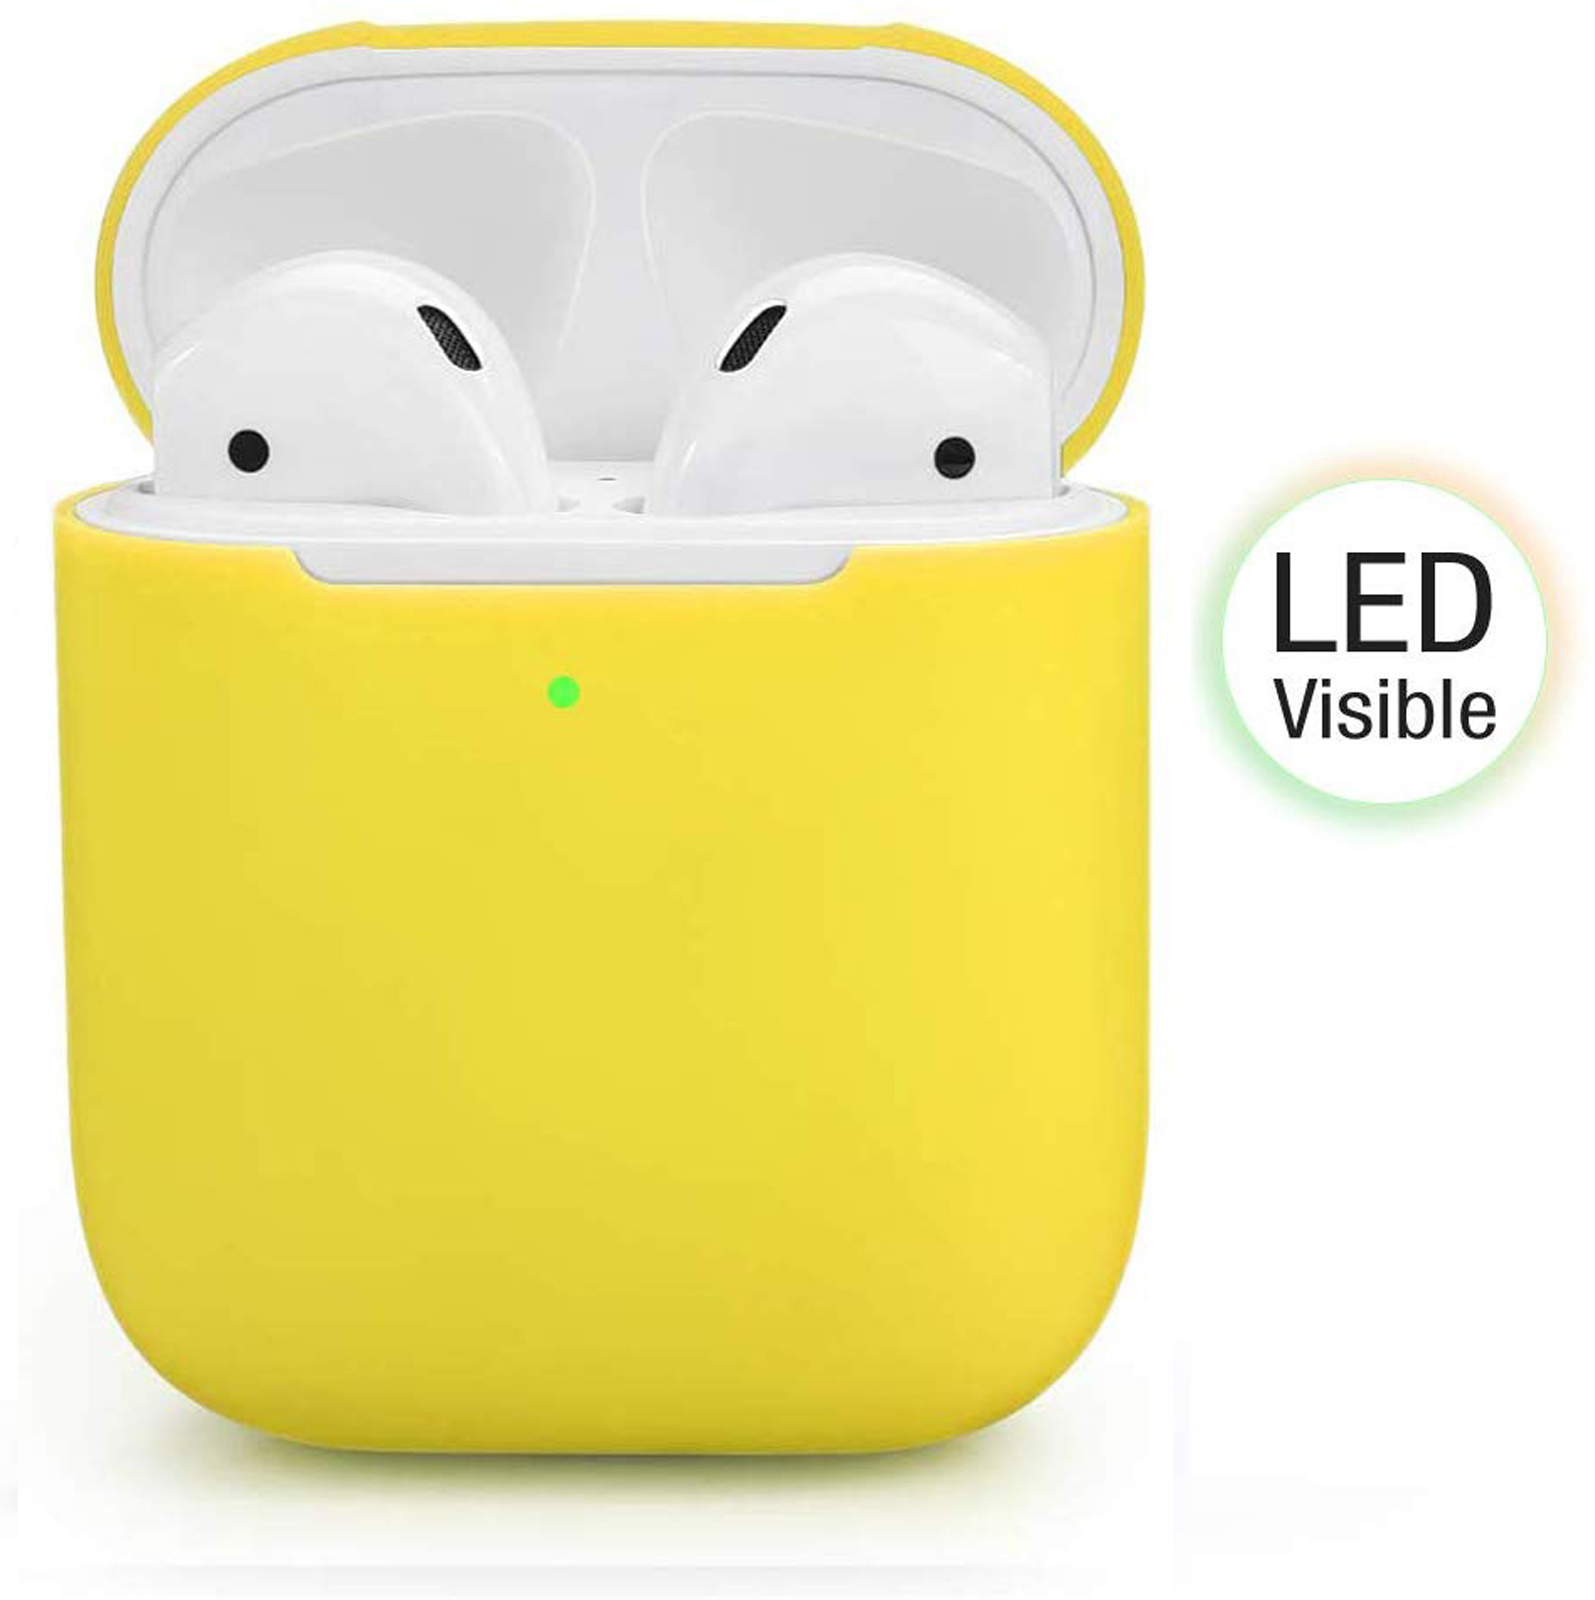 New-Silicone-TPU-Soft-Skin-Case-For-Apple-Airpods-1-2-Earphones-Charger-Cover miniatura 130